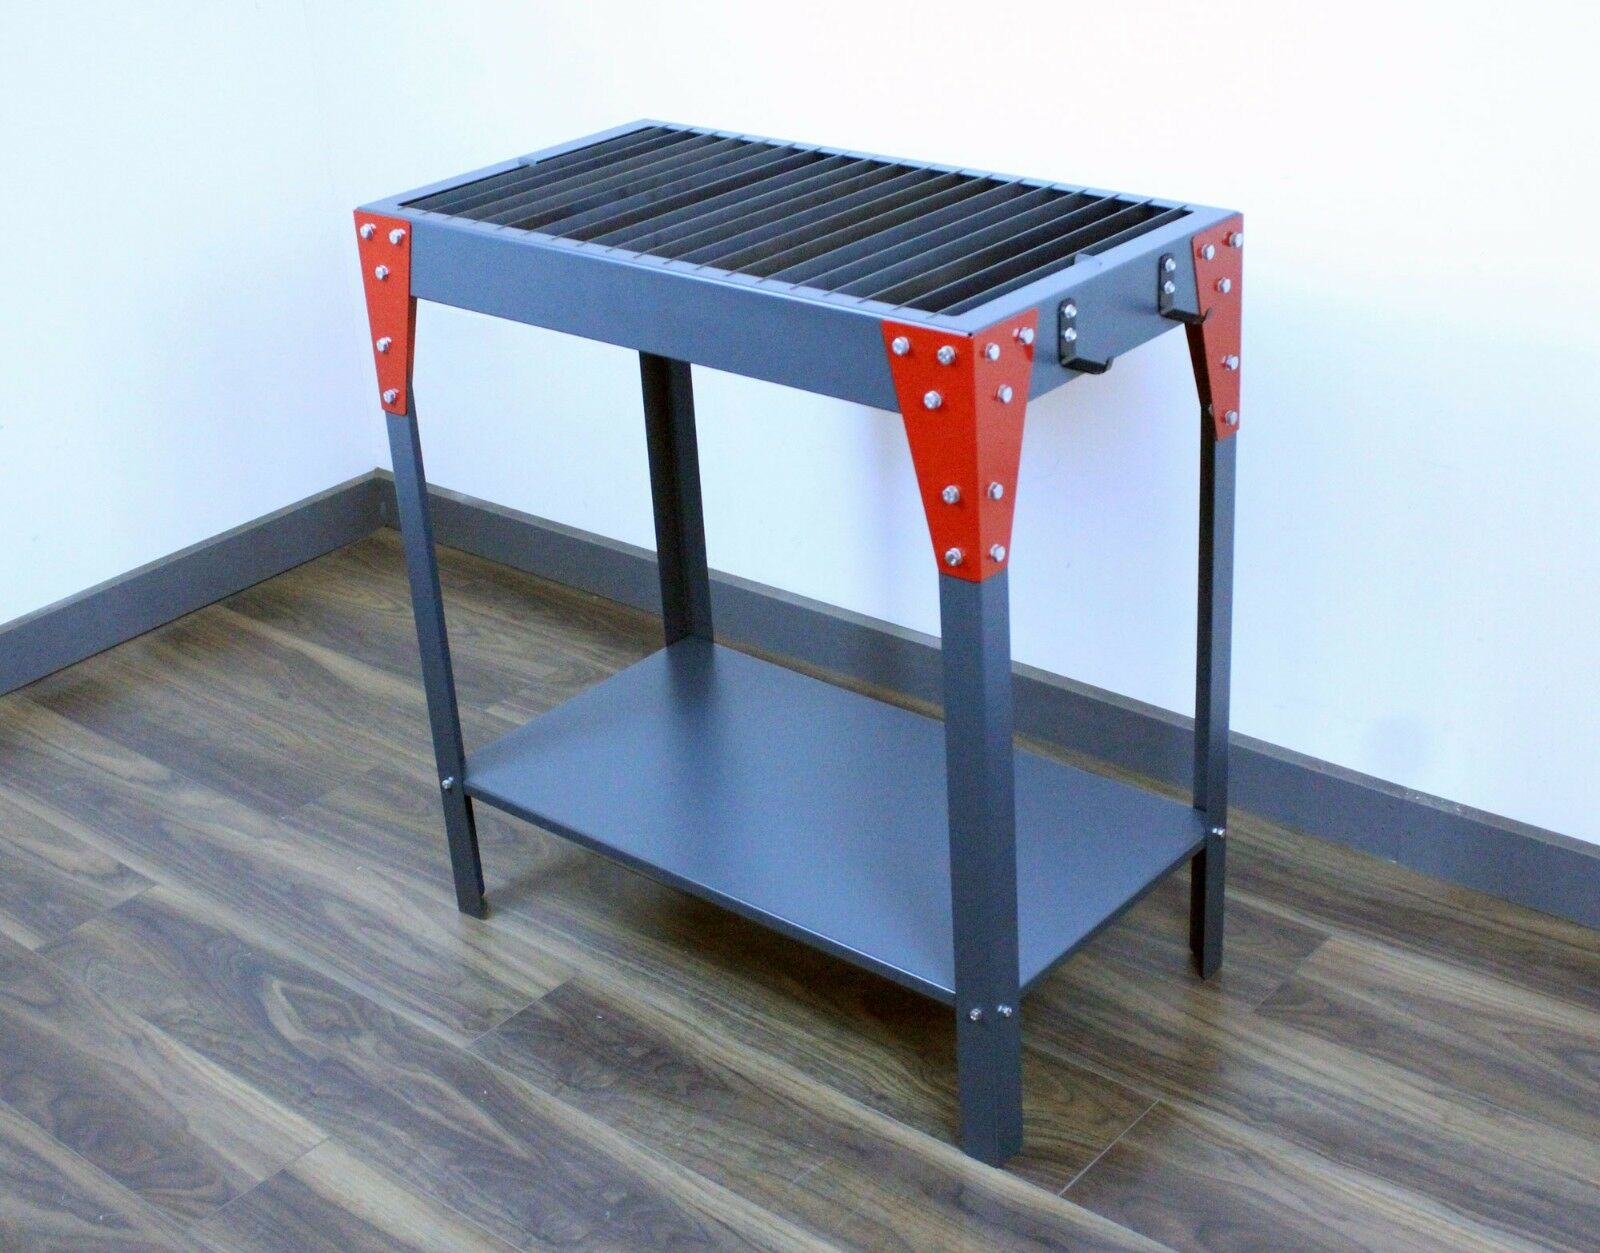 Handheld Plasma Cutter Cutting Table Workbench Not Hypertherm Cnc In Addition Consumables On Diy Schematic A Uniquely Designed Manual Has Been And Manufactured The United Kingdom